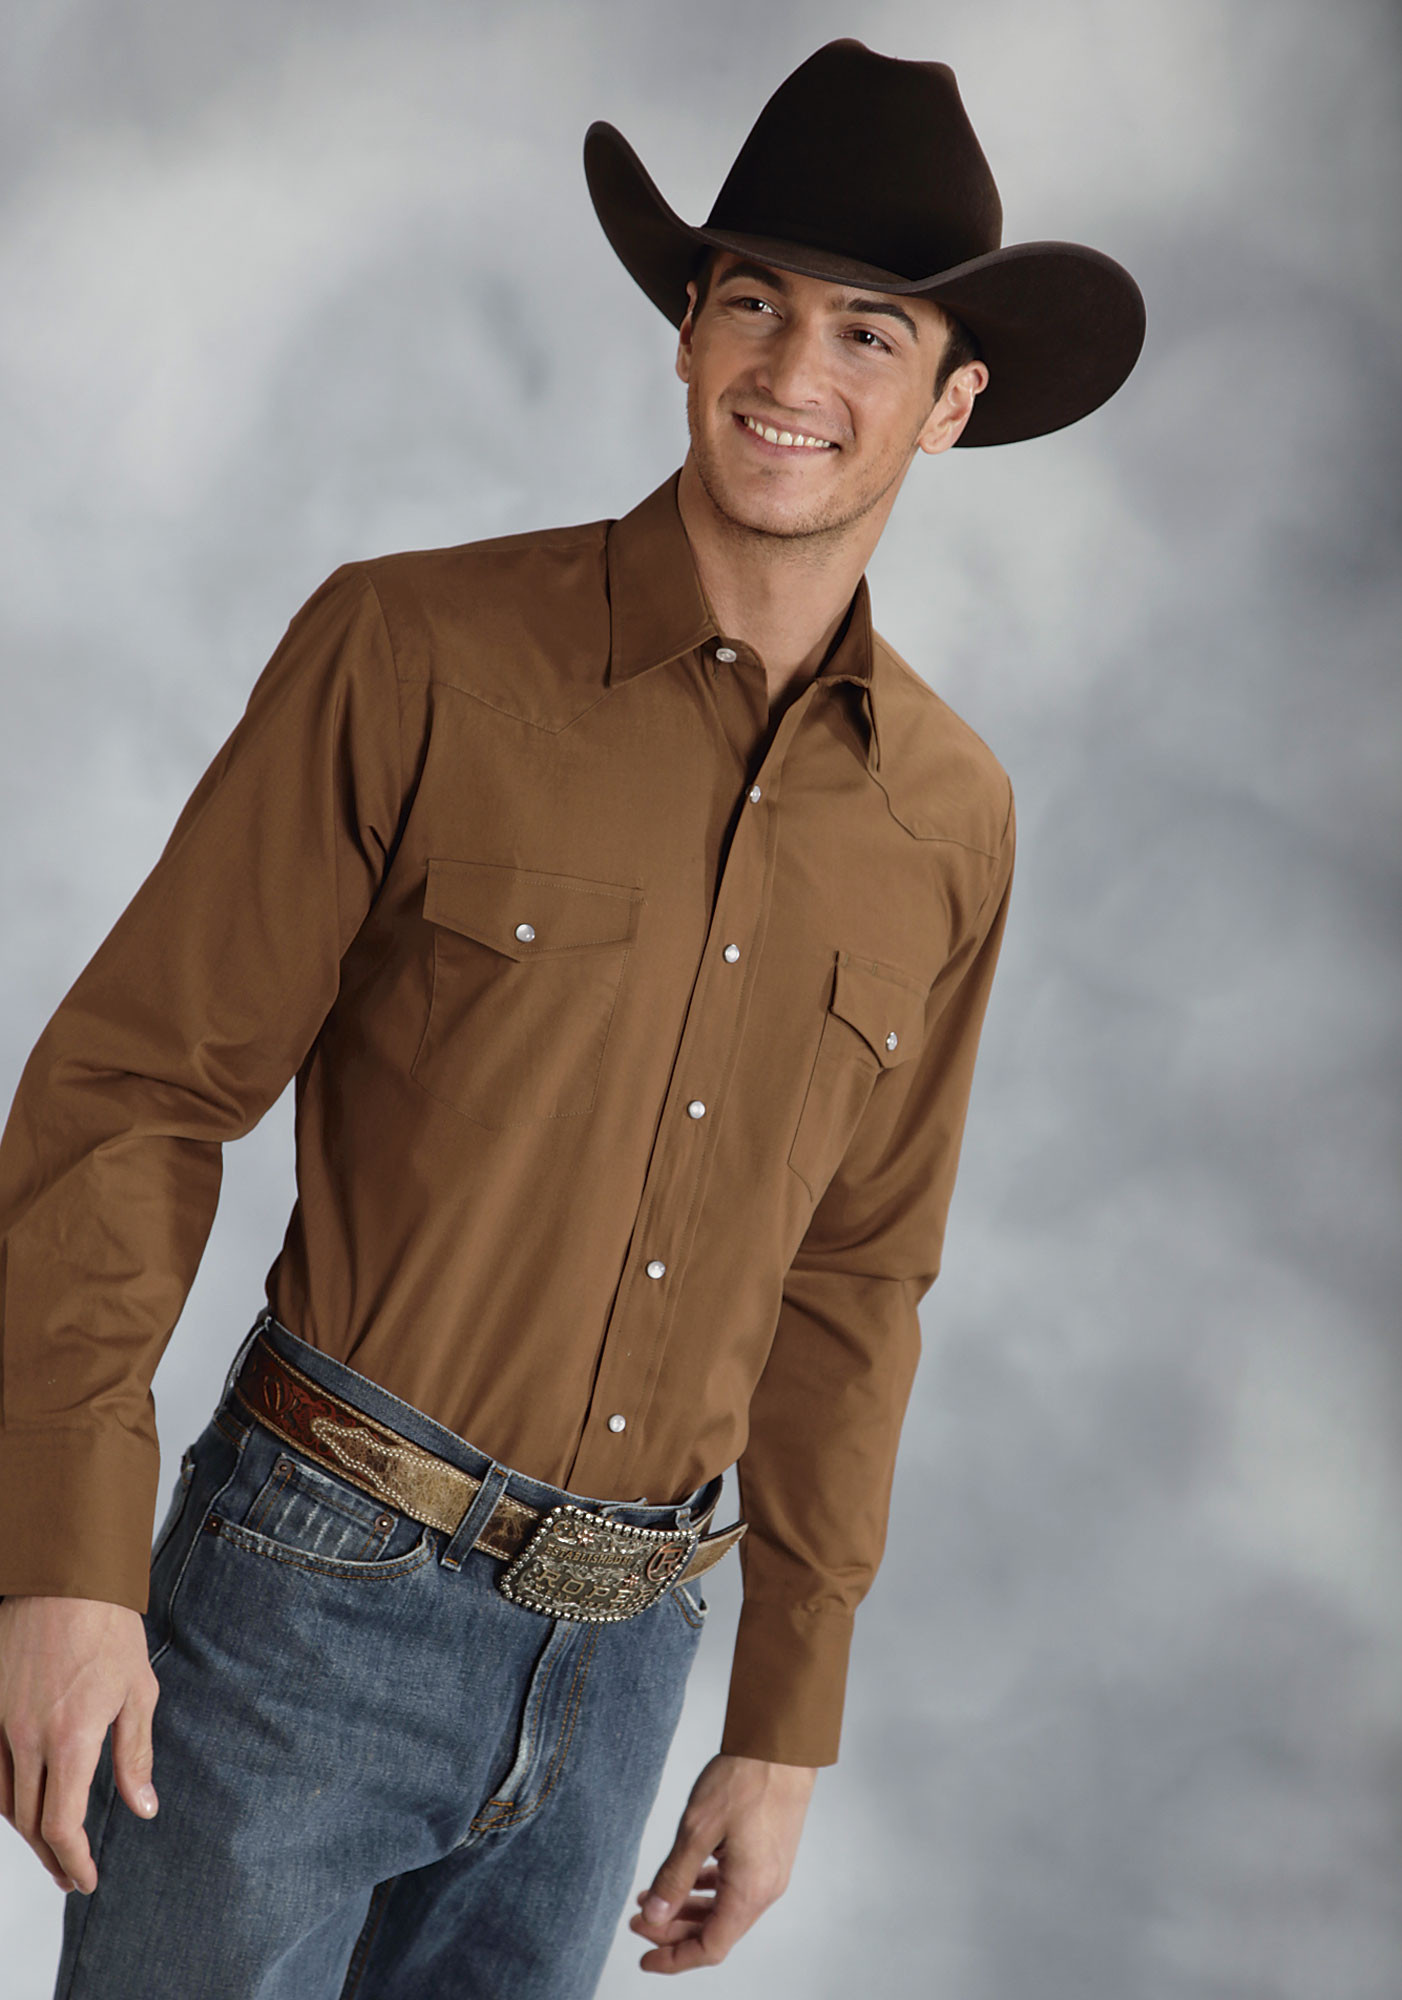 Pearl snap shirts are THE distinguishing feature of a Western shirt compared to standard ole shirts. Pearl snaps are designed to be beautiful, unique in color, and lustrous - just like the genuine, smooth mother-of-pearl lining in an oyster.